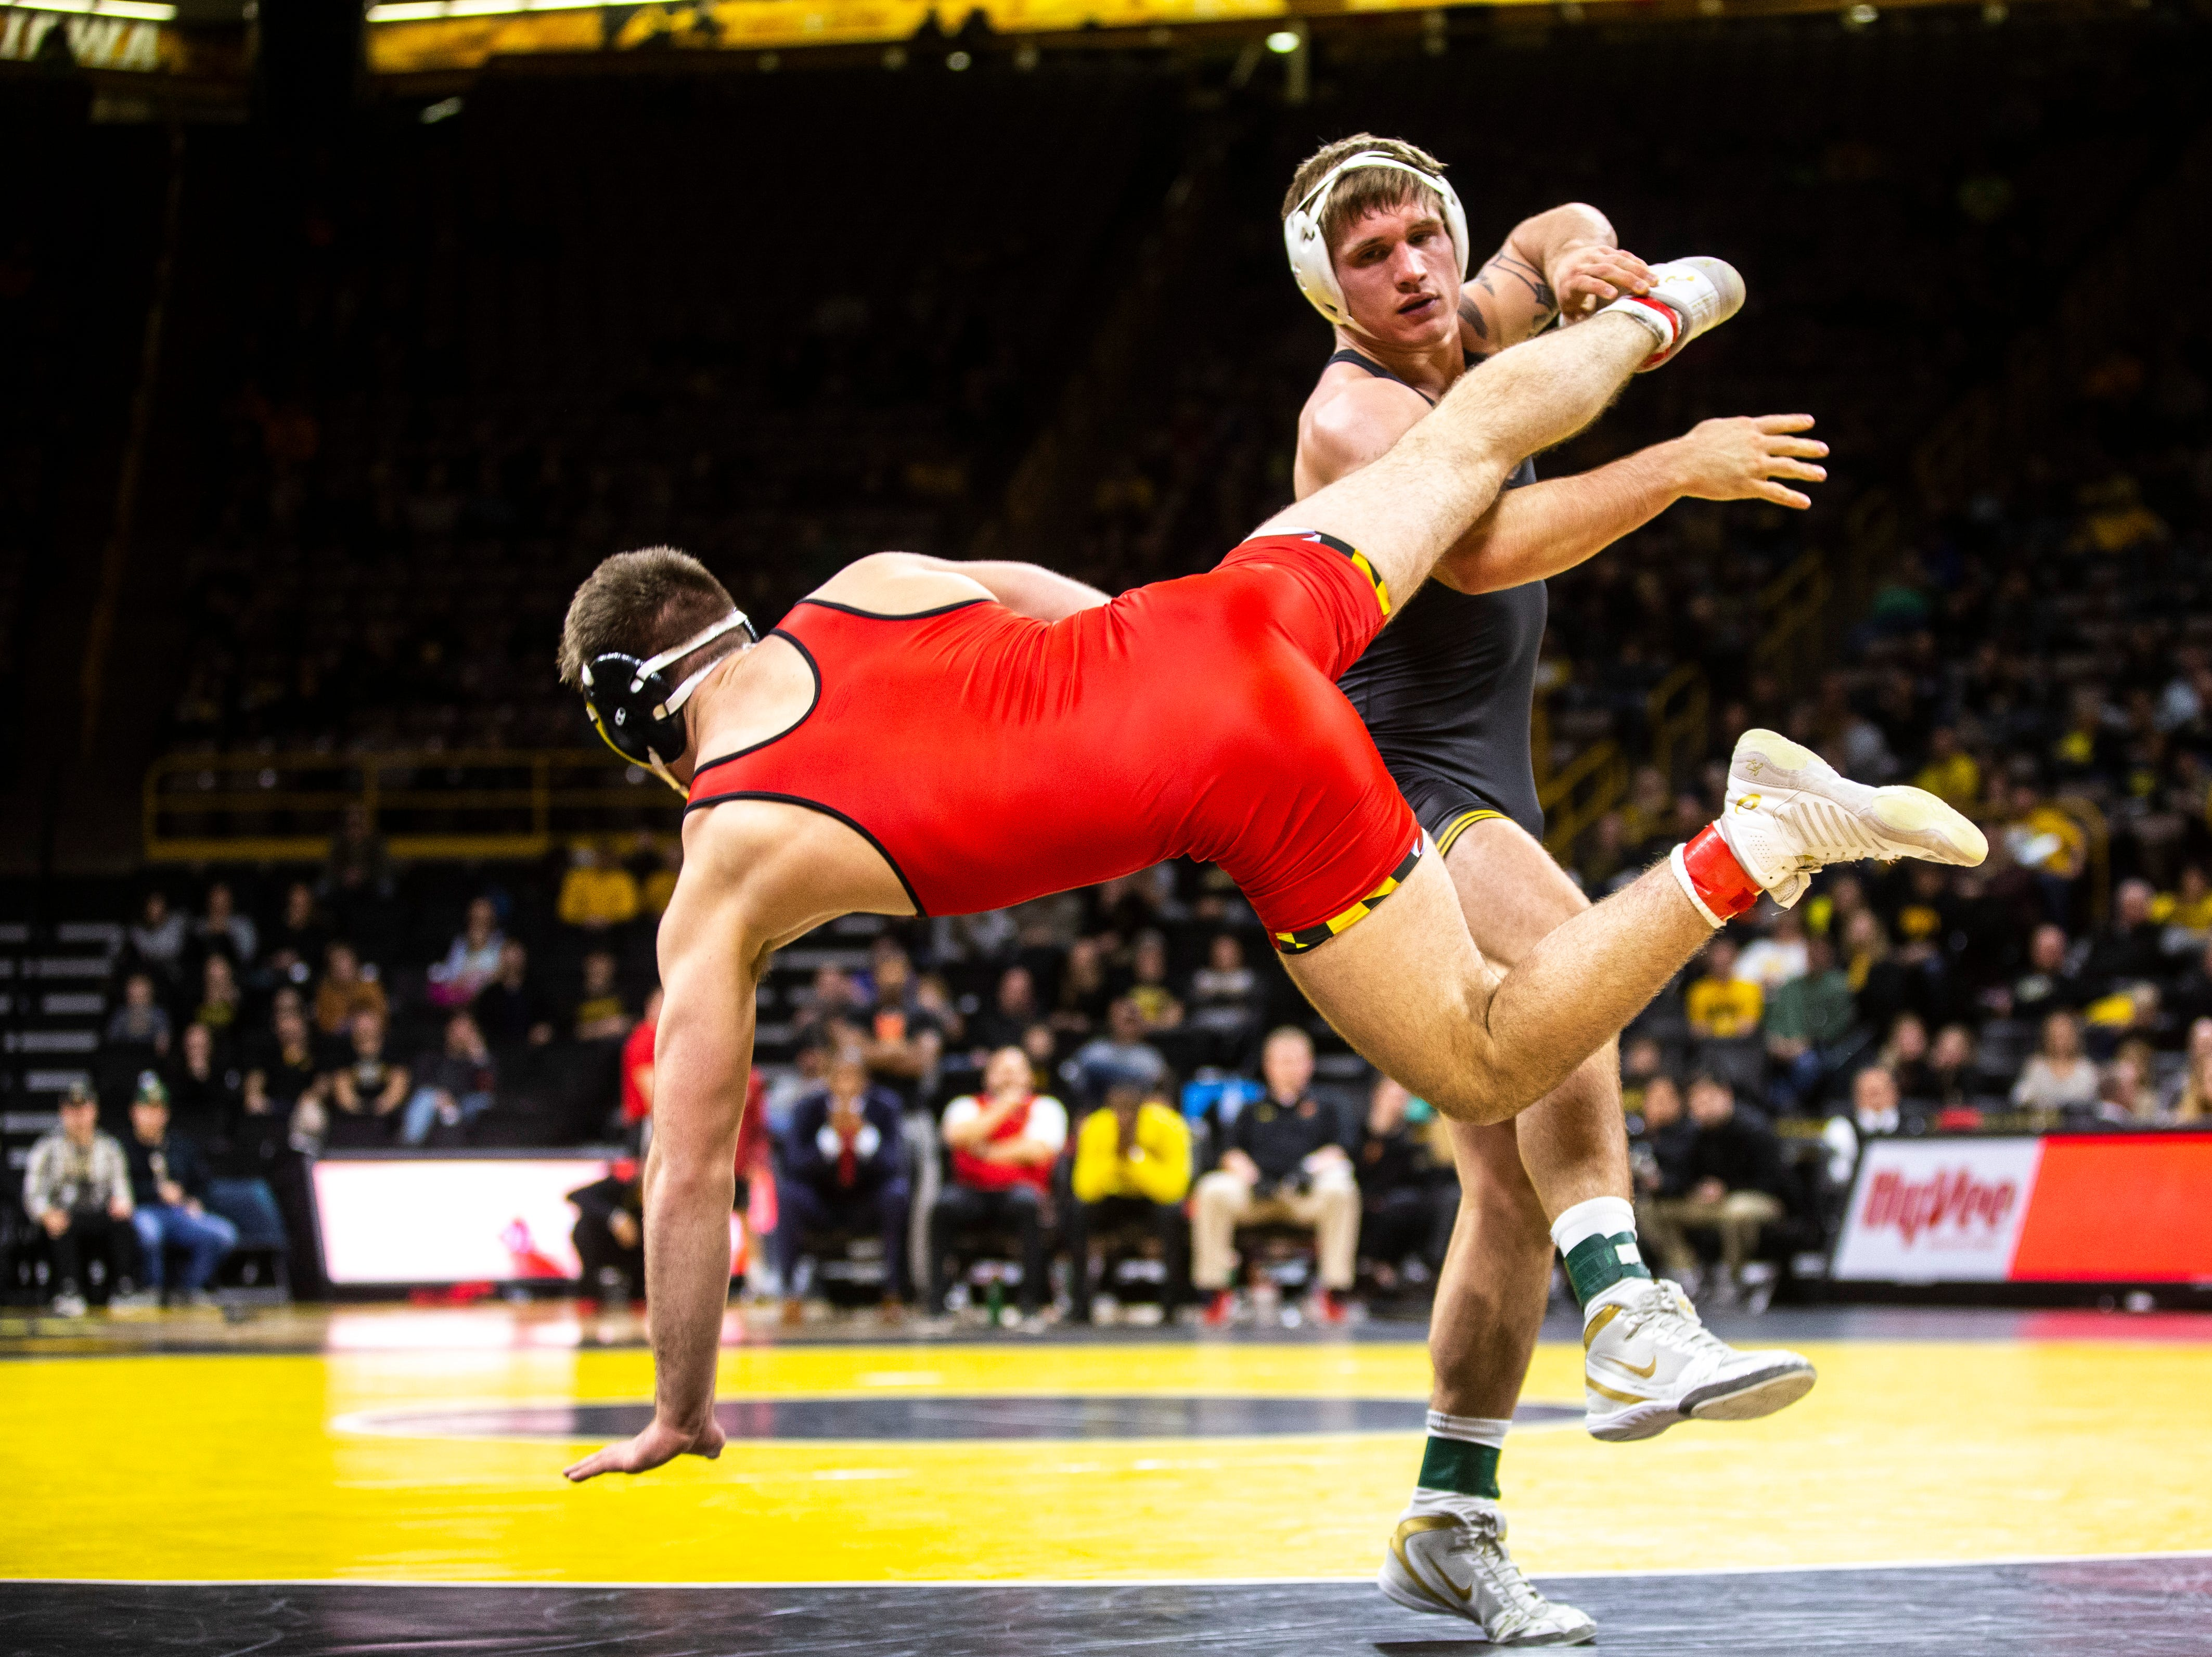 Iowa's Cash Wilcke, right, wrestles Maryland's Kyle Jasenski at 184 during a NCAA Big Ten Conference wrestling dual on Friday, Feb. 8, 2019 at Carver-Hawkeye Arena in Iowa City, Iowa.